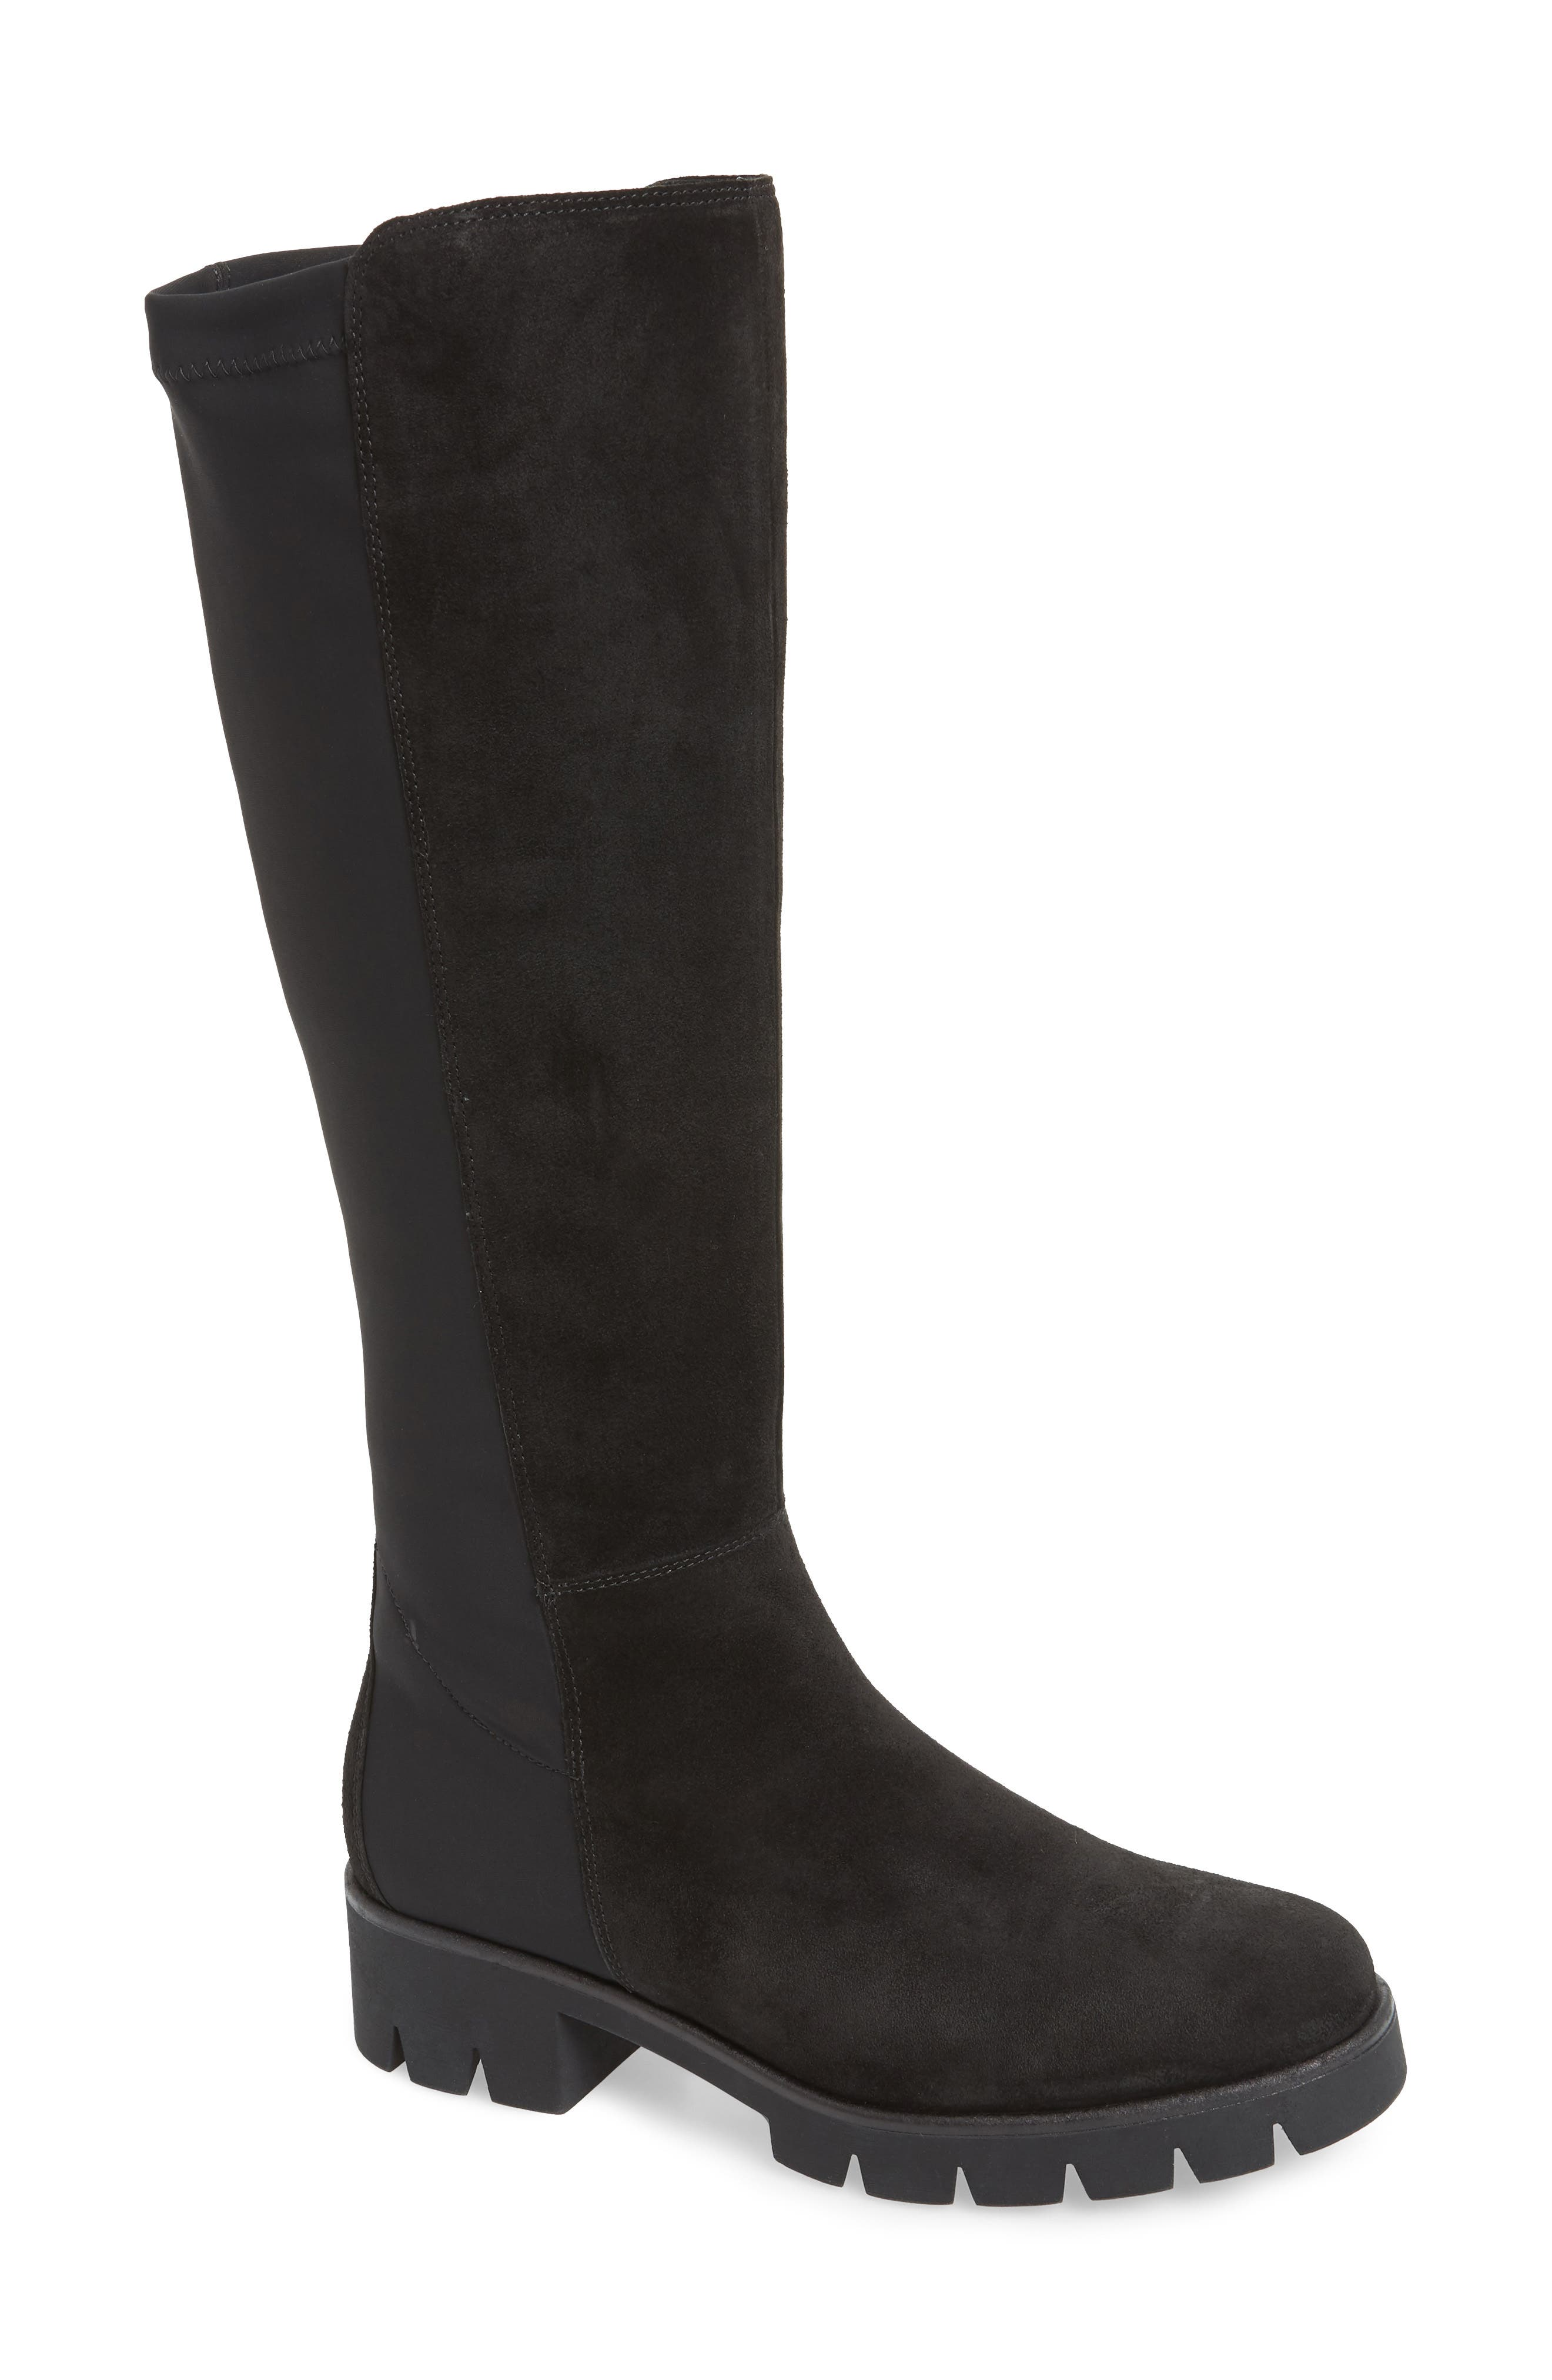 Gabor Ultimate Fashion Comfort Knee High Boot- Black